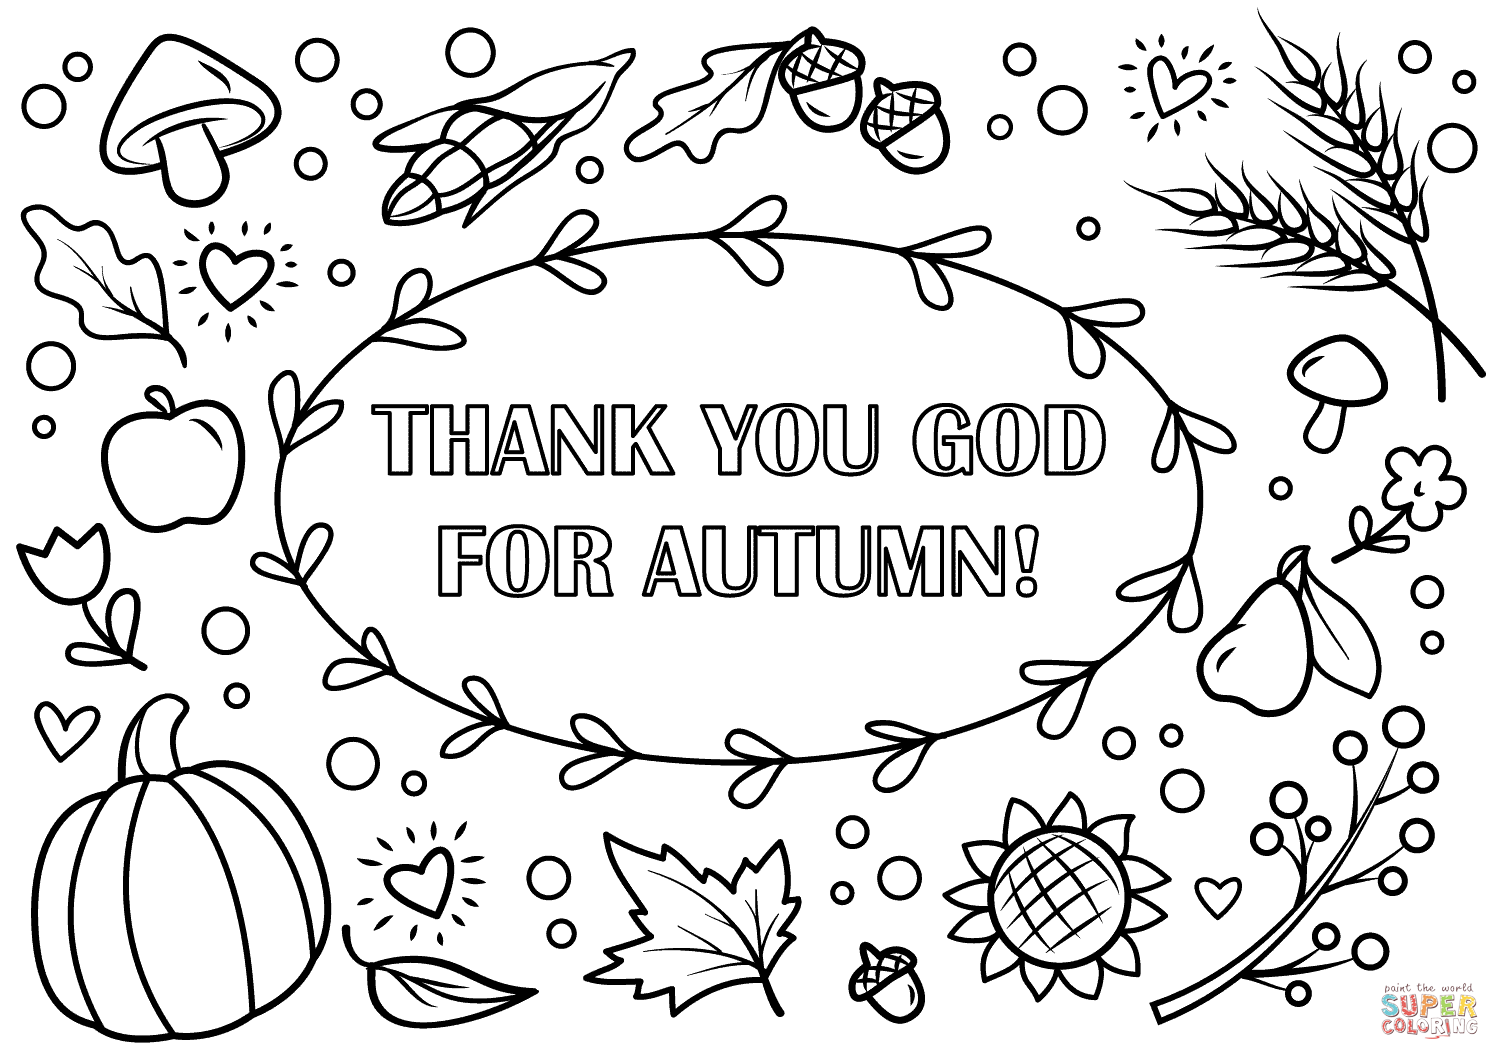 Thank You God For Autumn Coloring Page